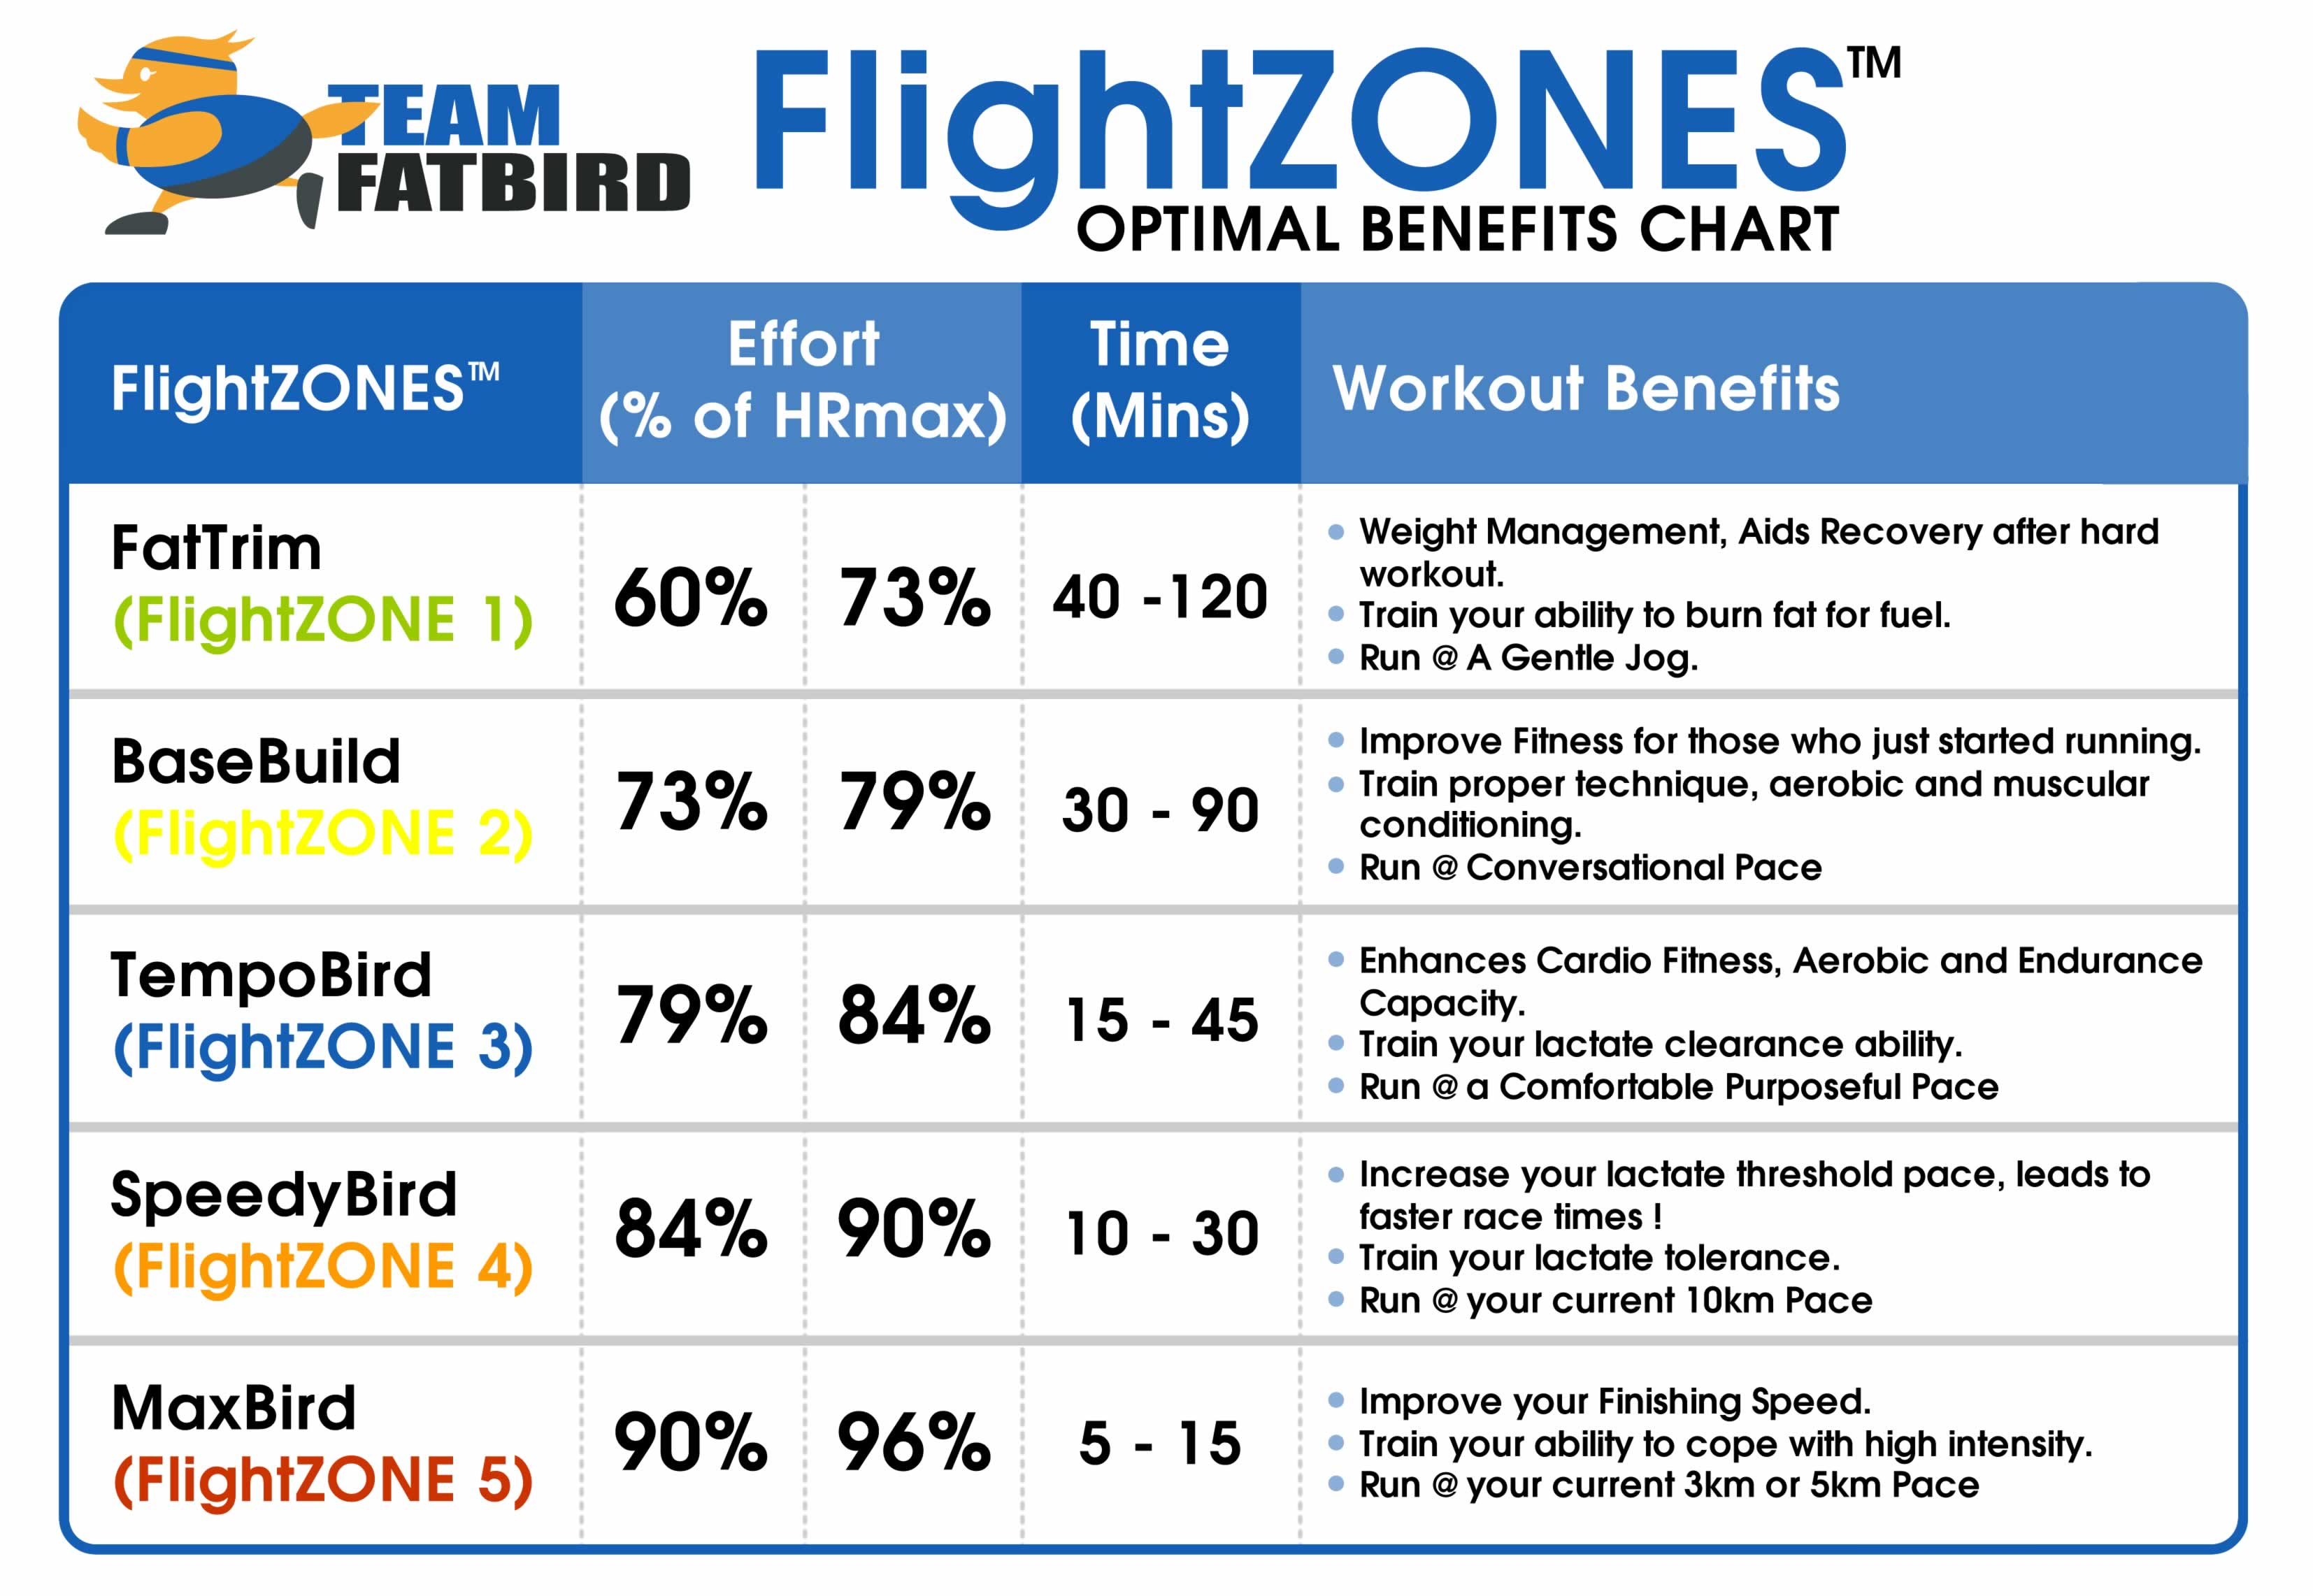 FlightZONES-OptimalBenefitsChart